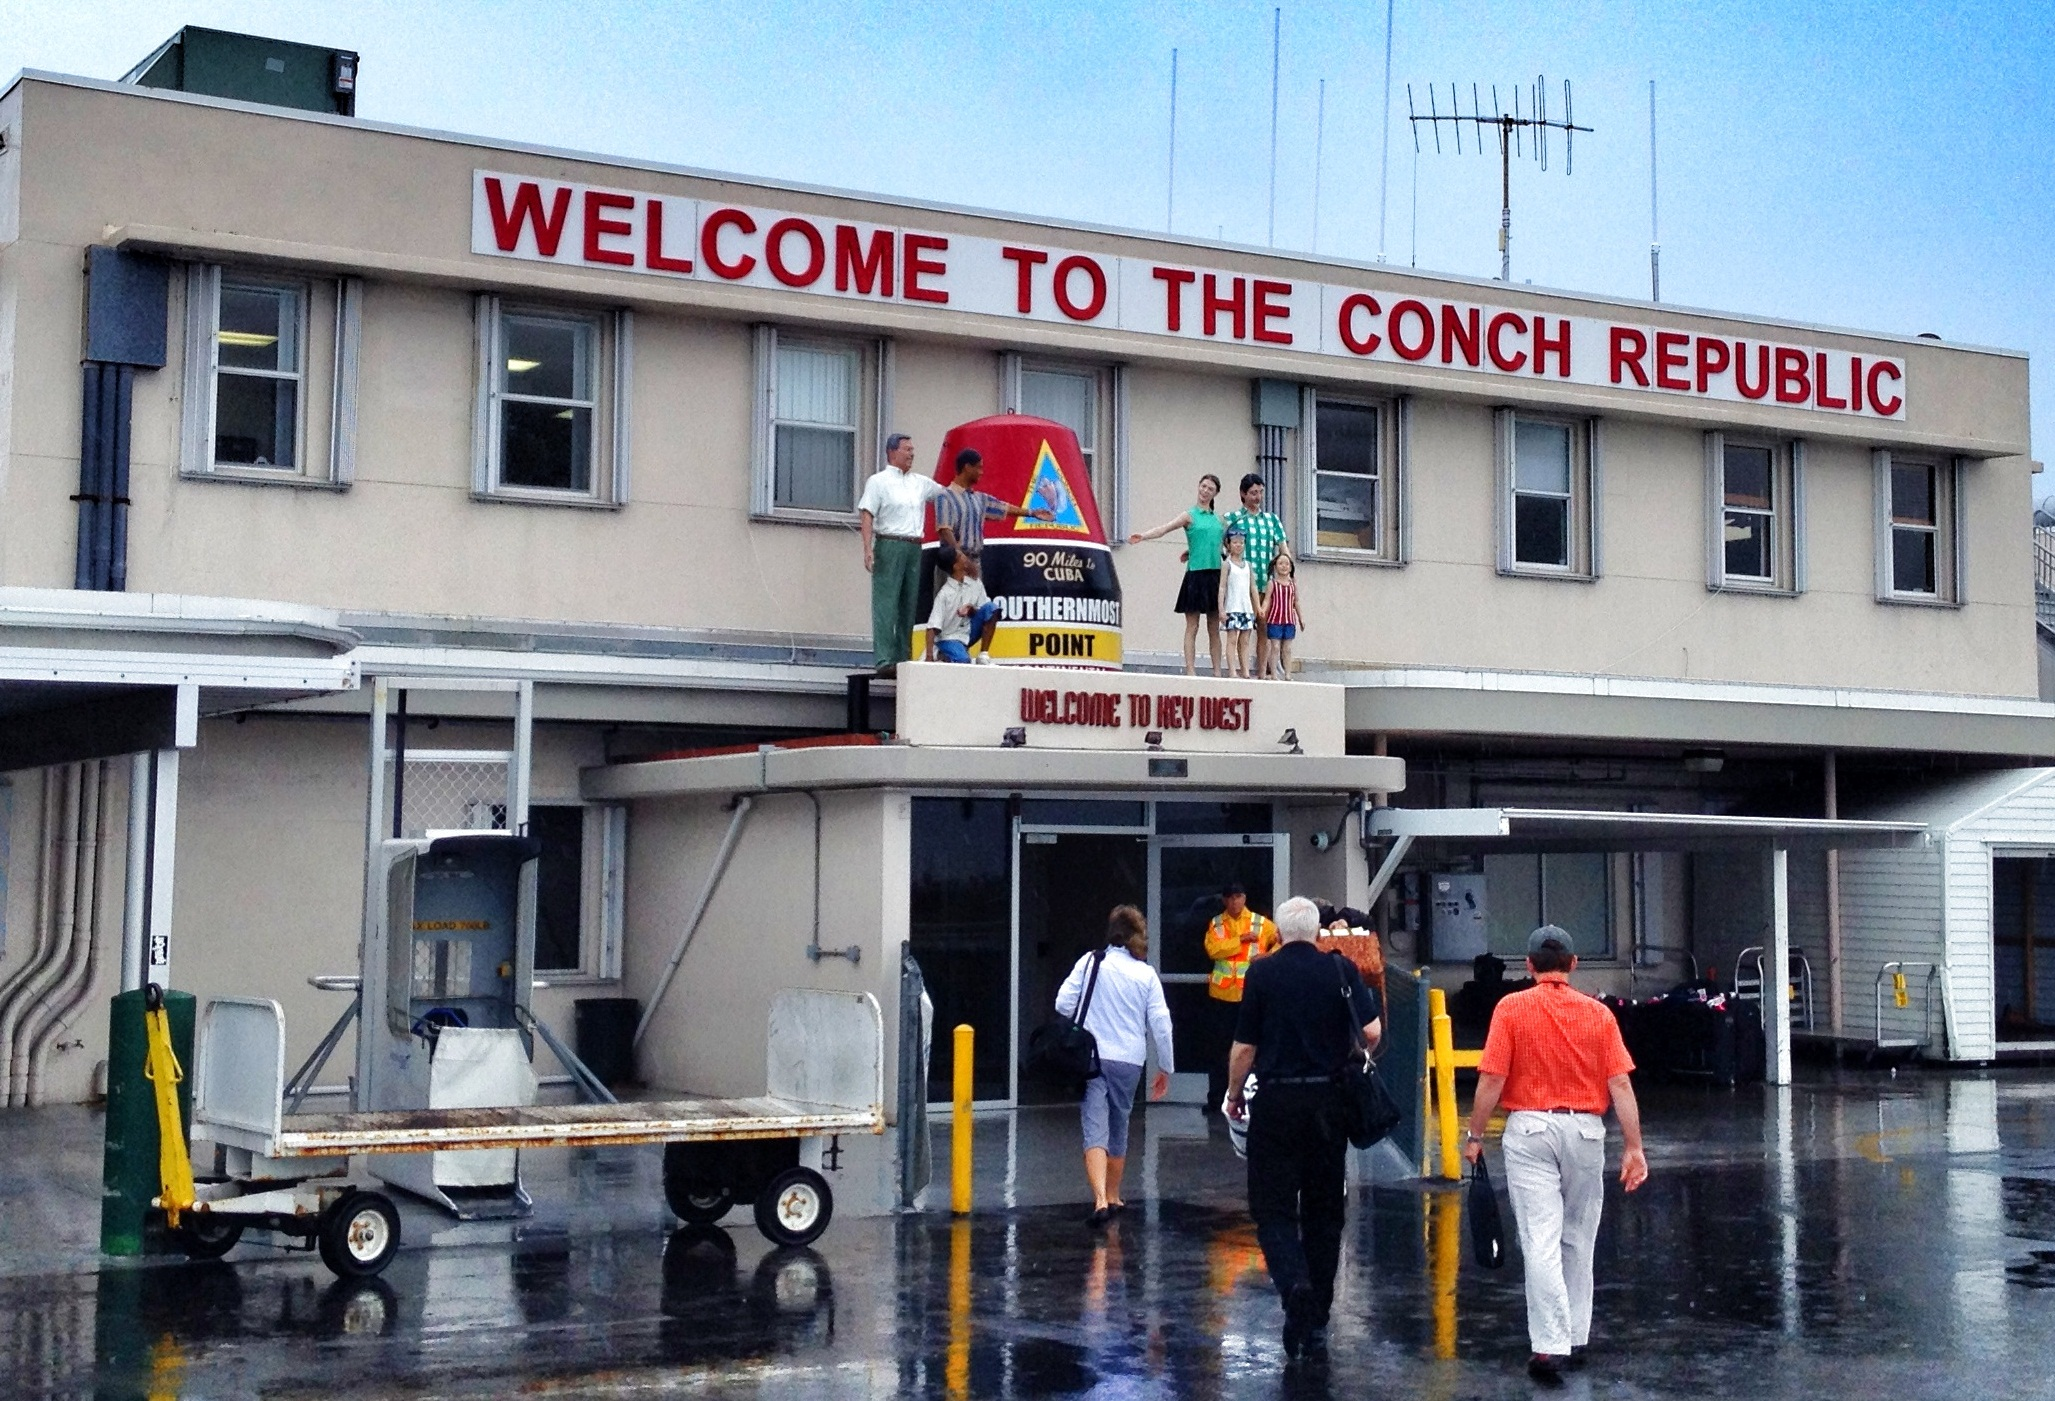 Conch Republic: